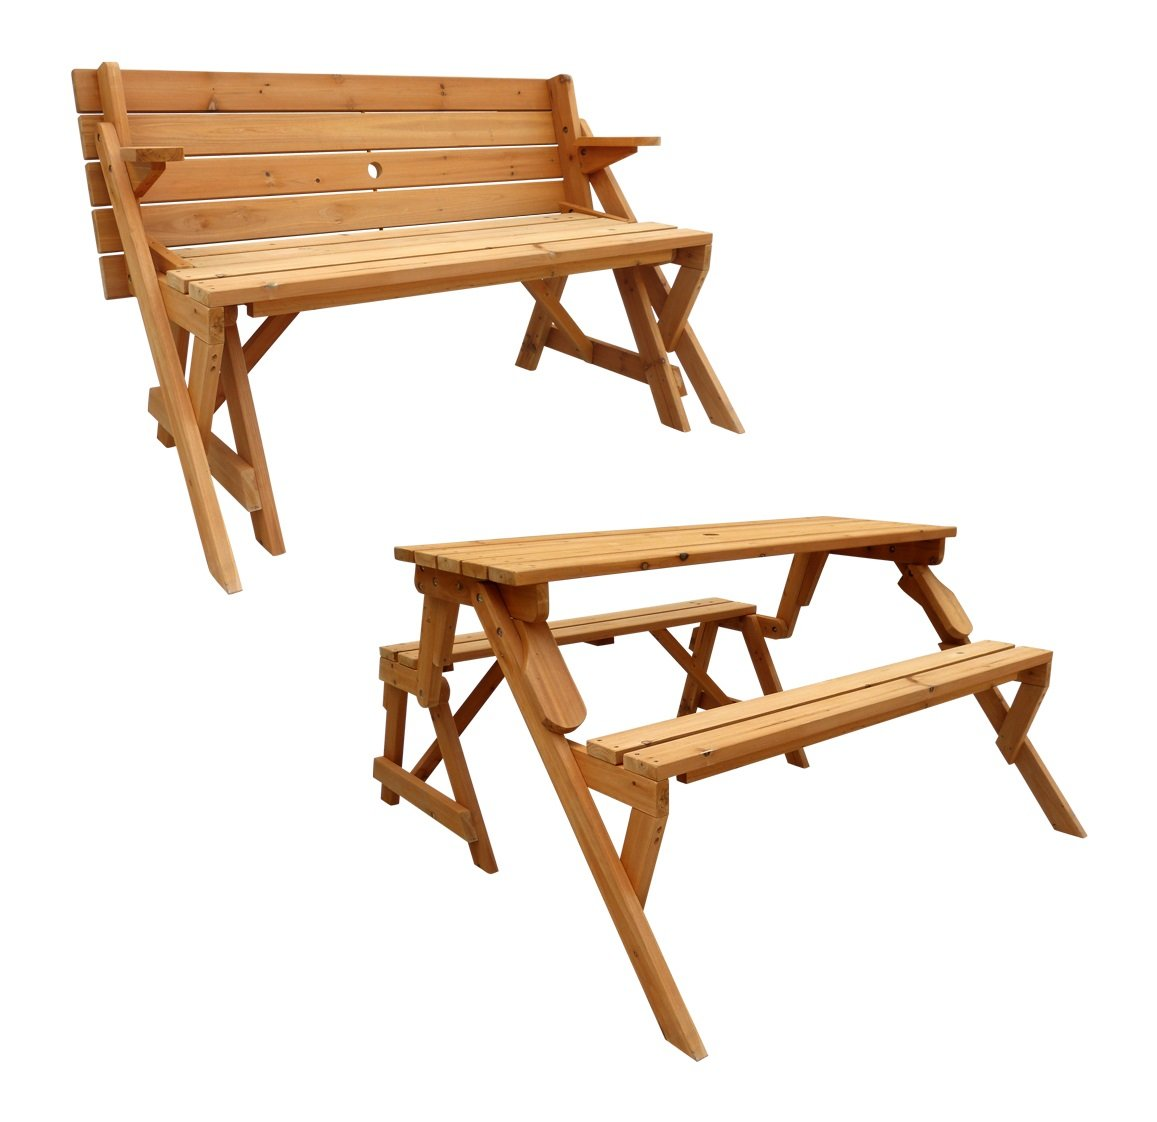 vietnam phu product folding foldable thinh bench furniture fola outdoor collections